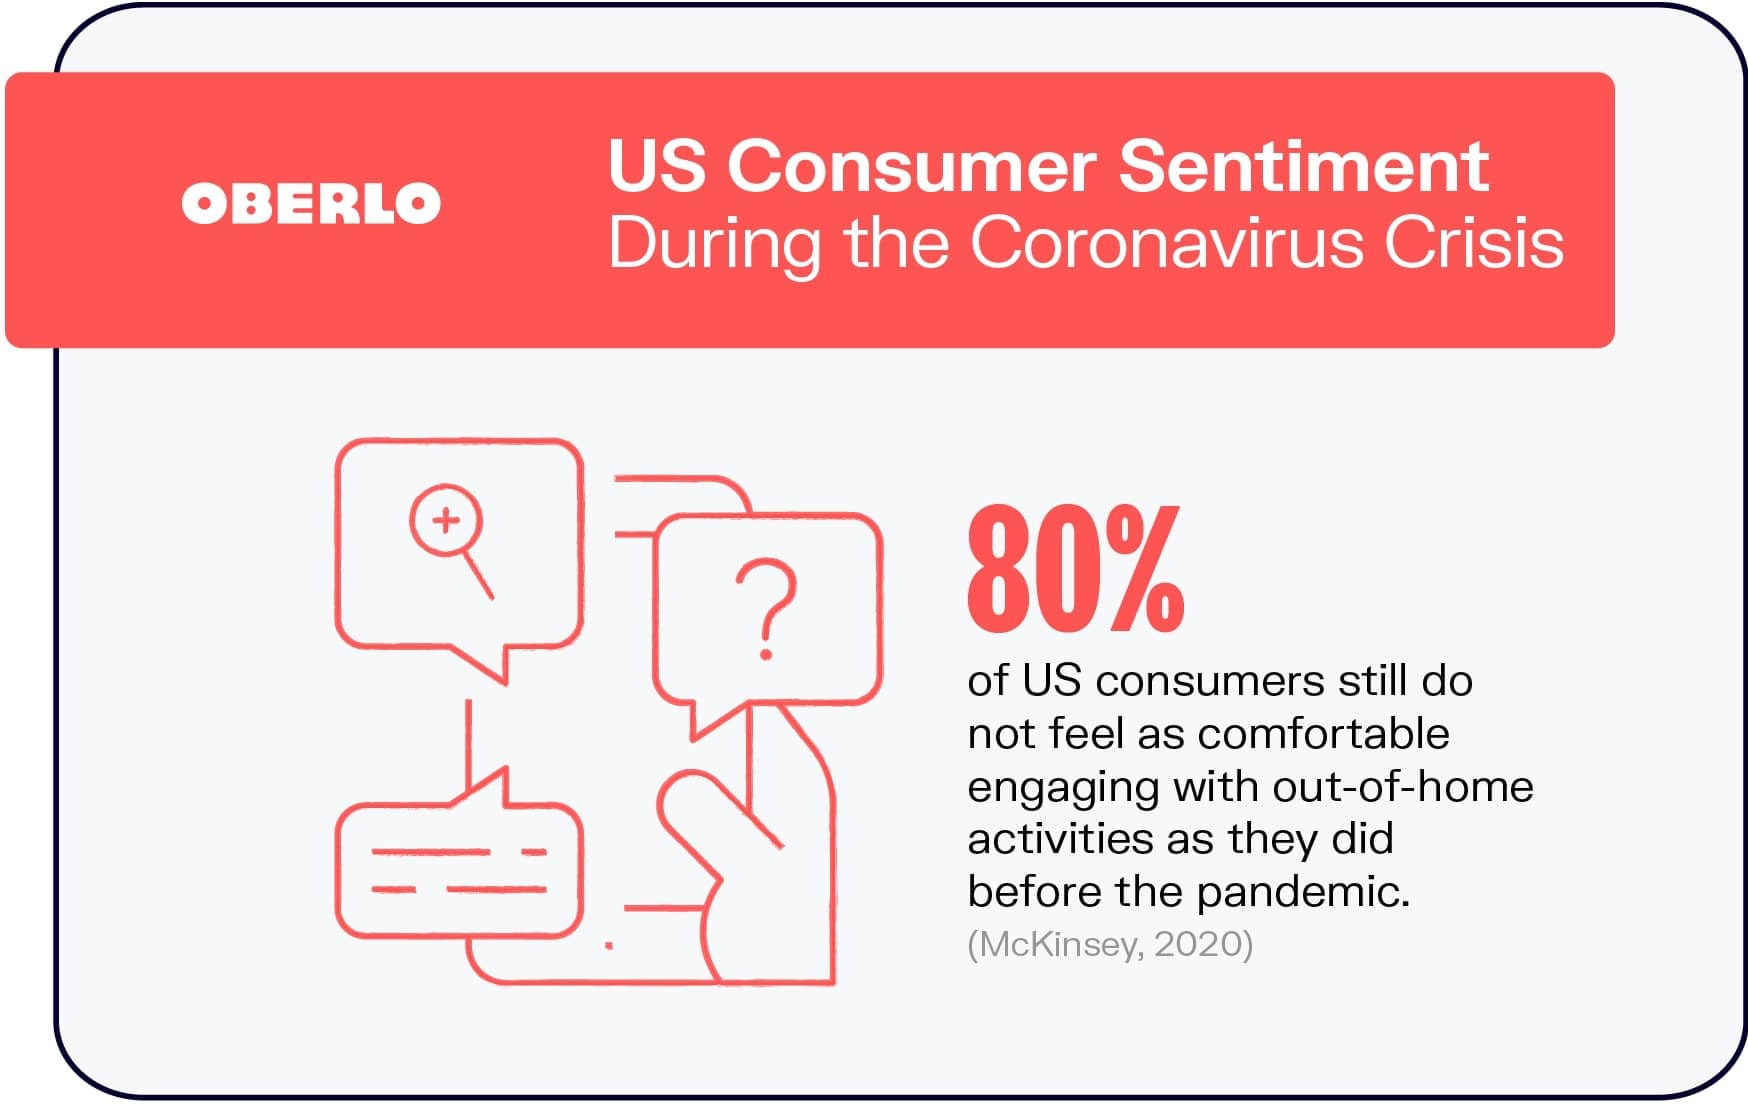 US Consumer Sentiment During the Coronavirus Crisis